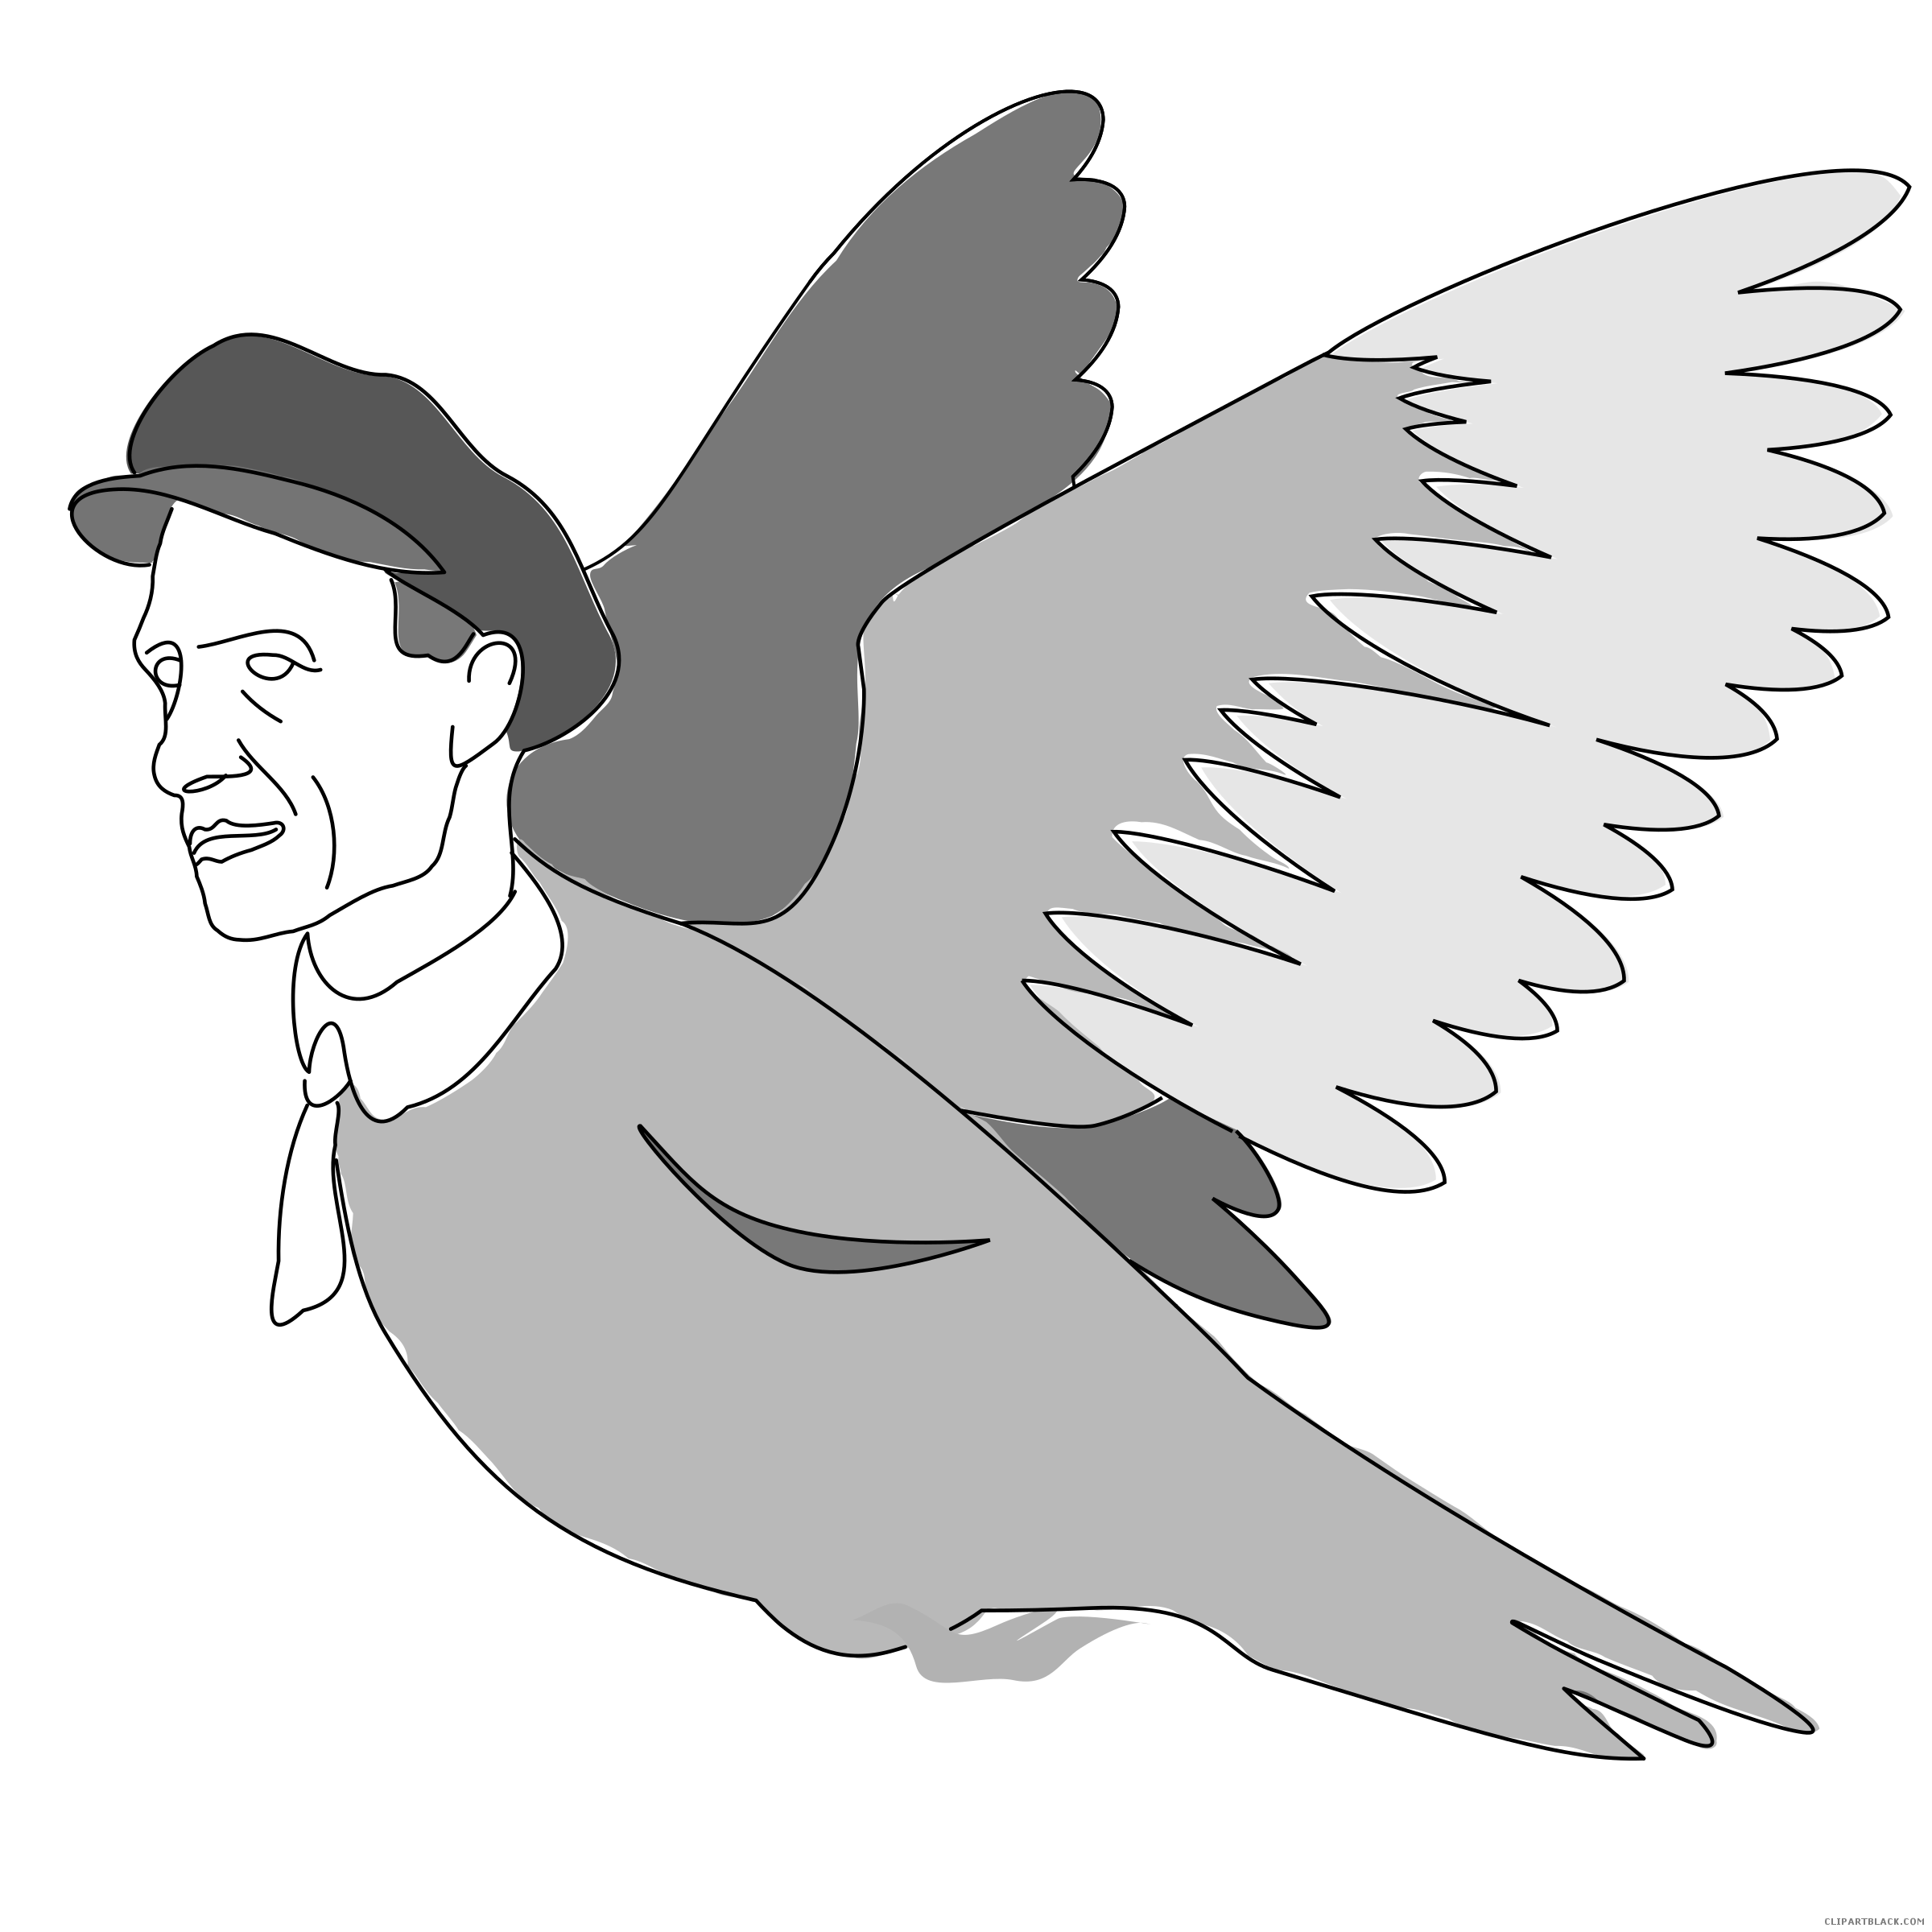 Clipartblack com animal free. Pigeon clipart black and white